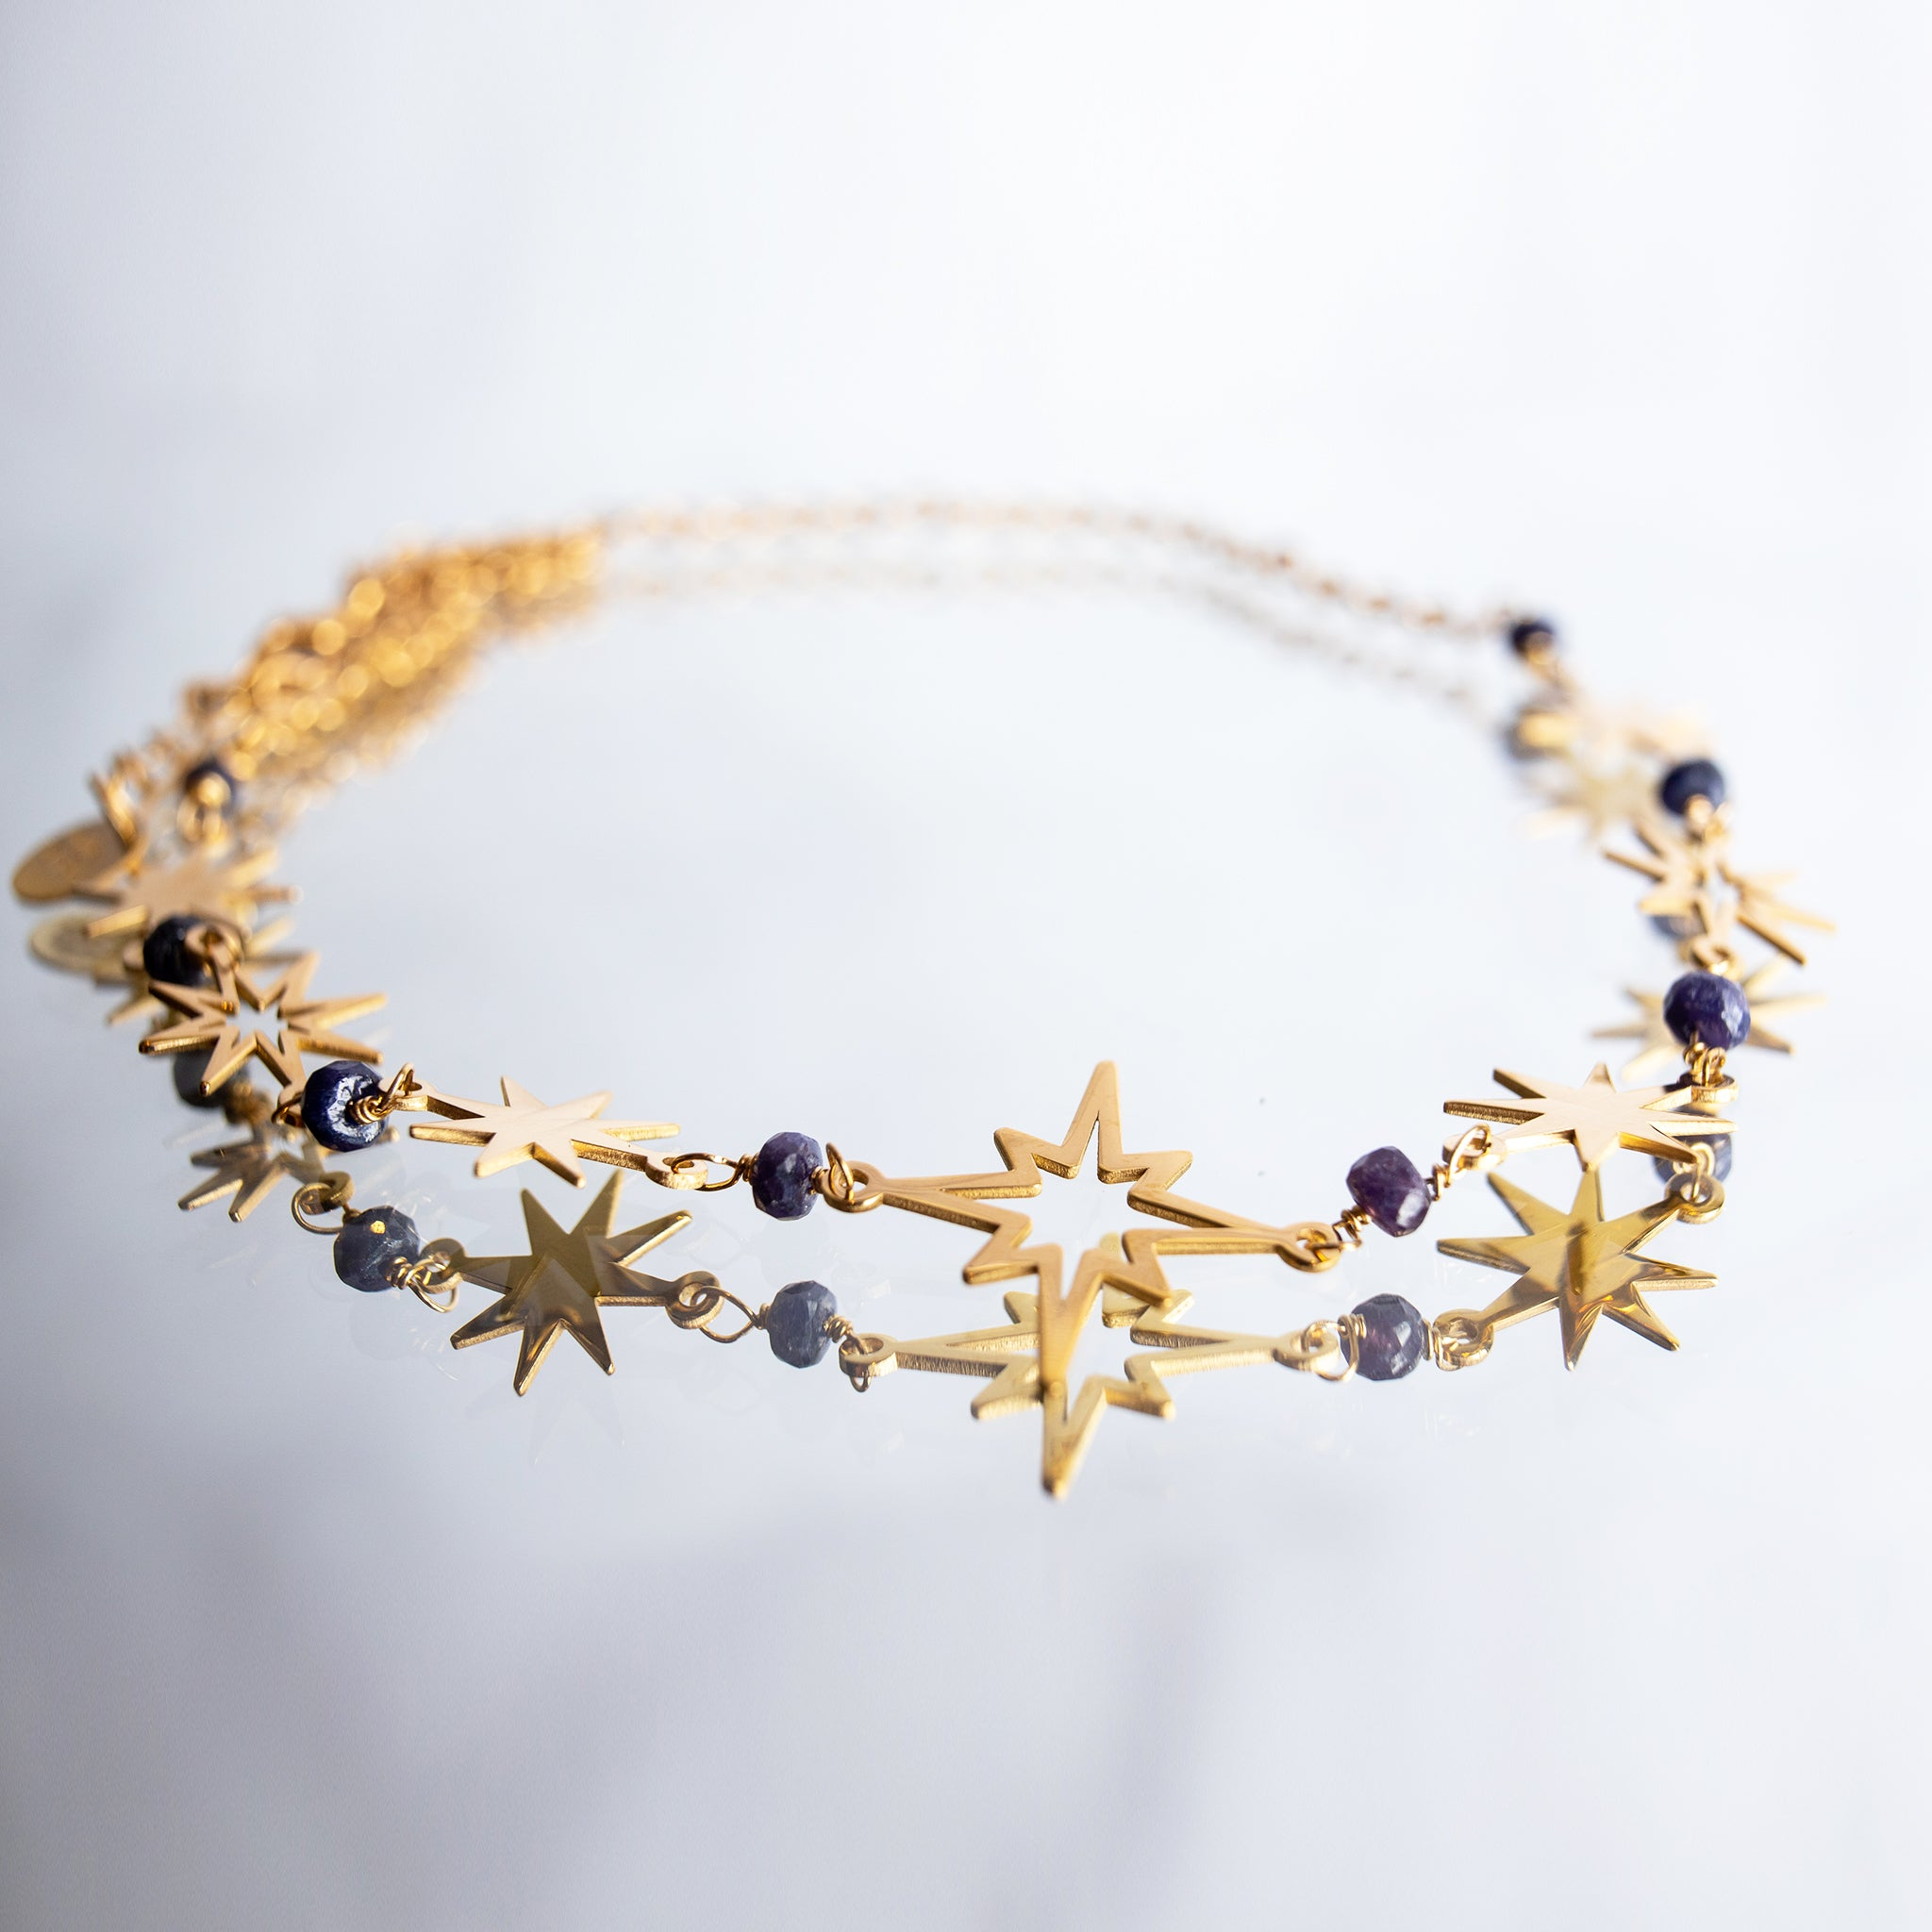 North Star Choker Necklace - Millié Jewelry